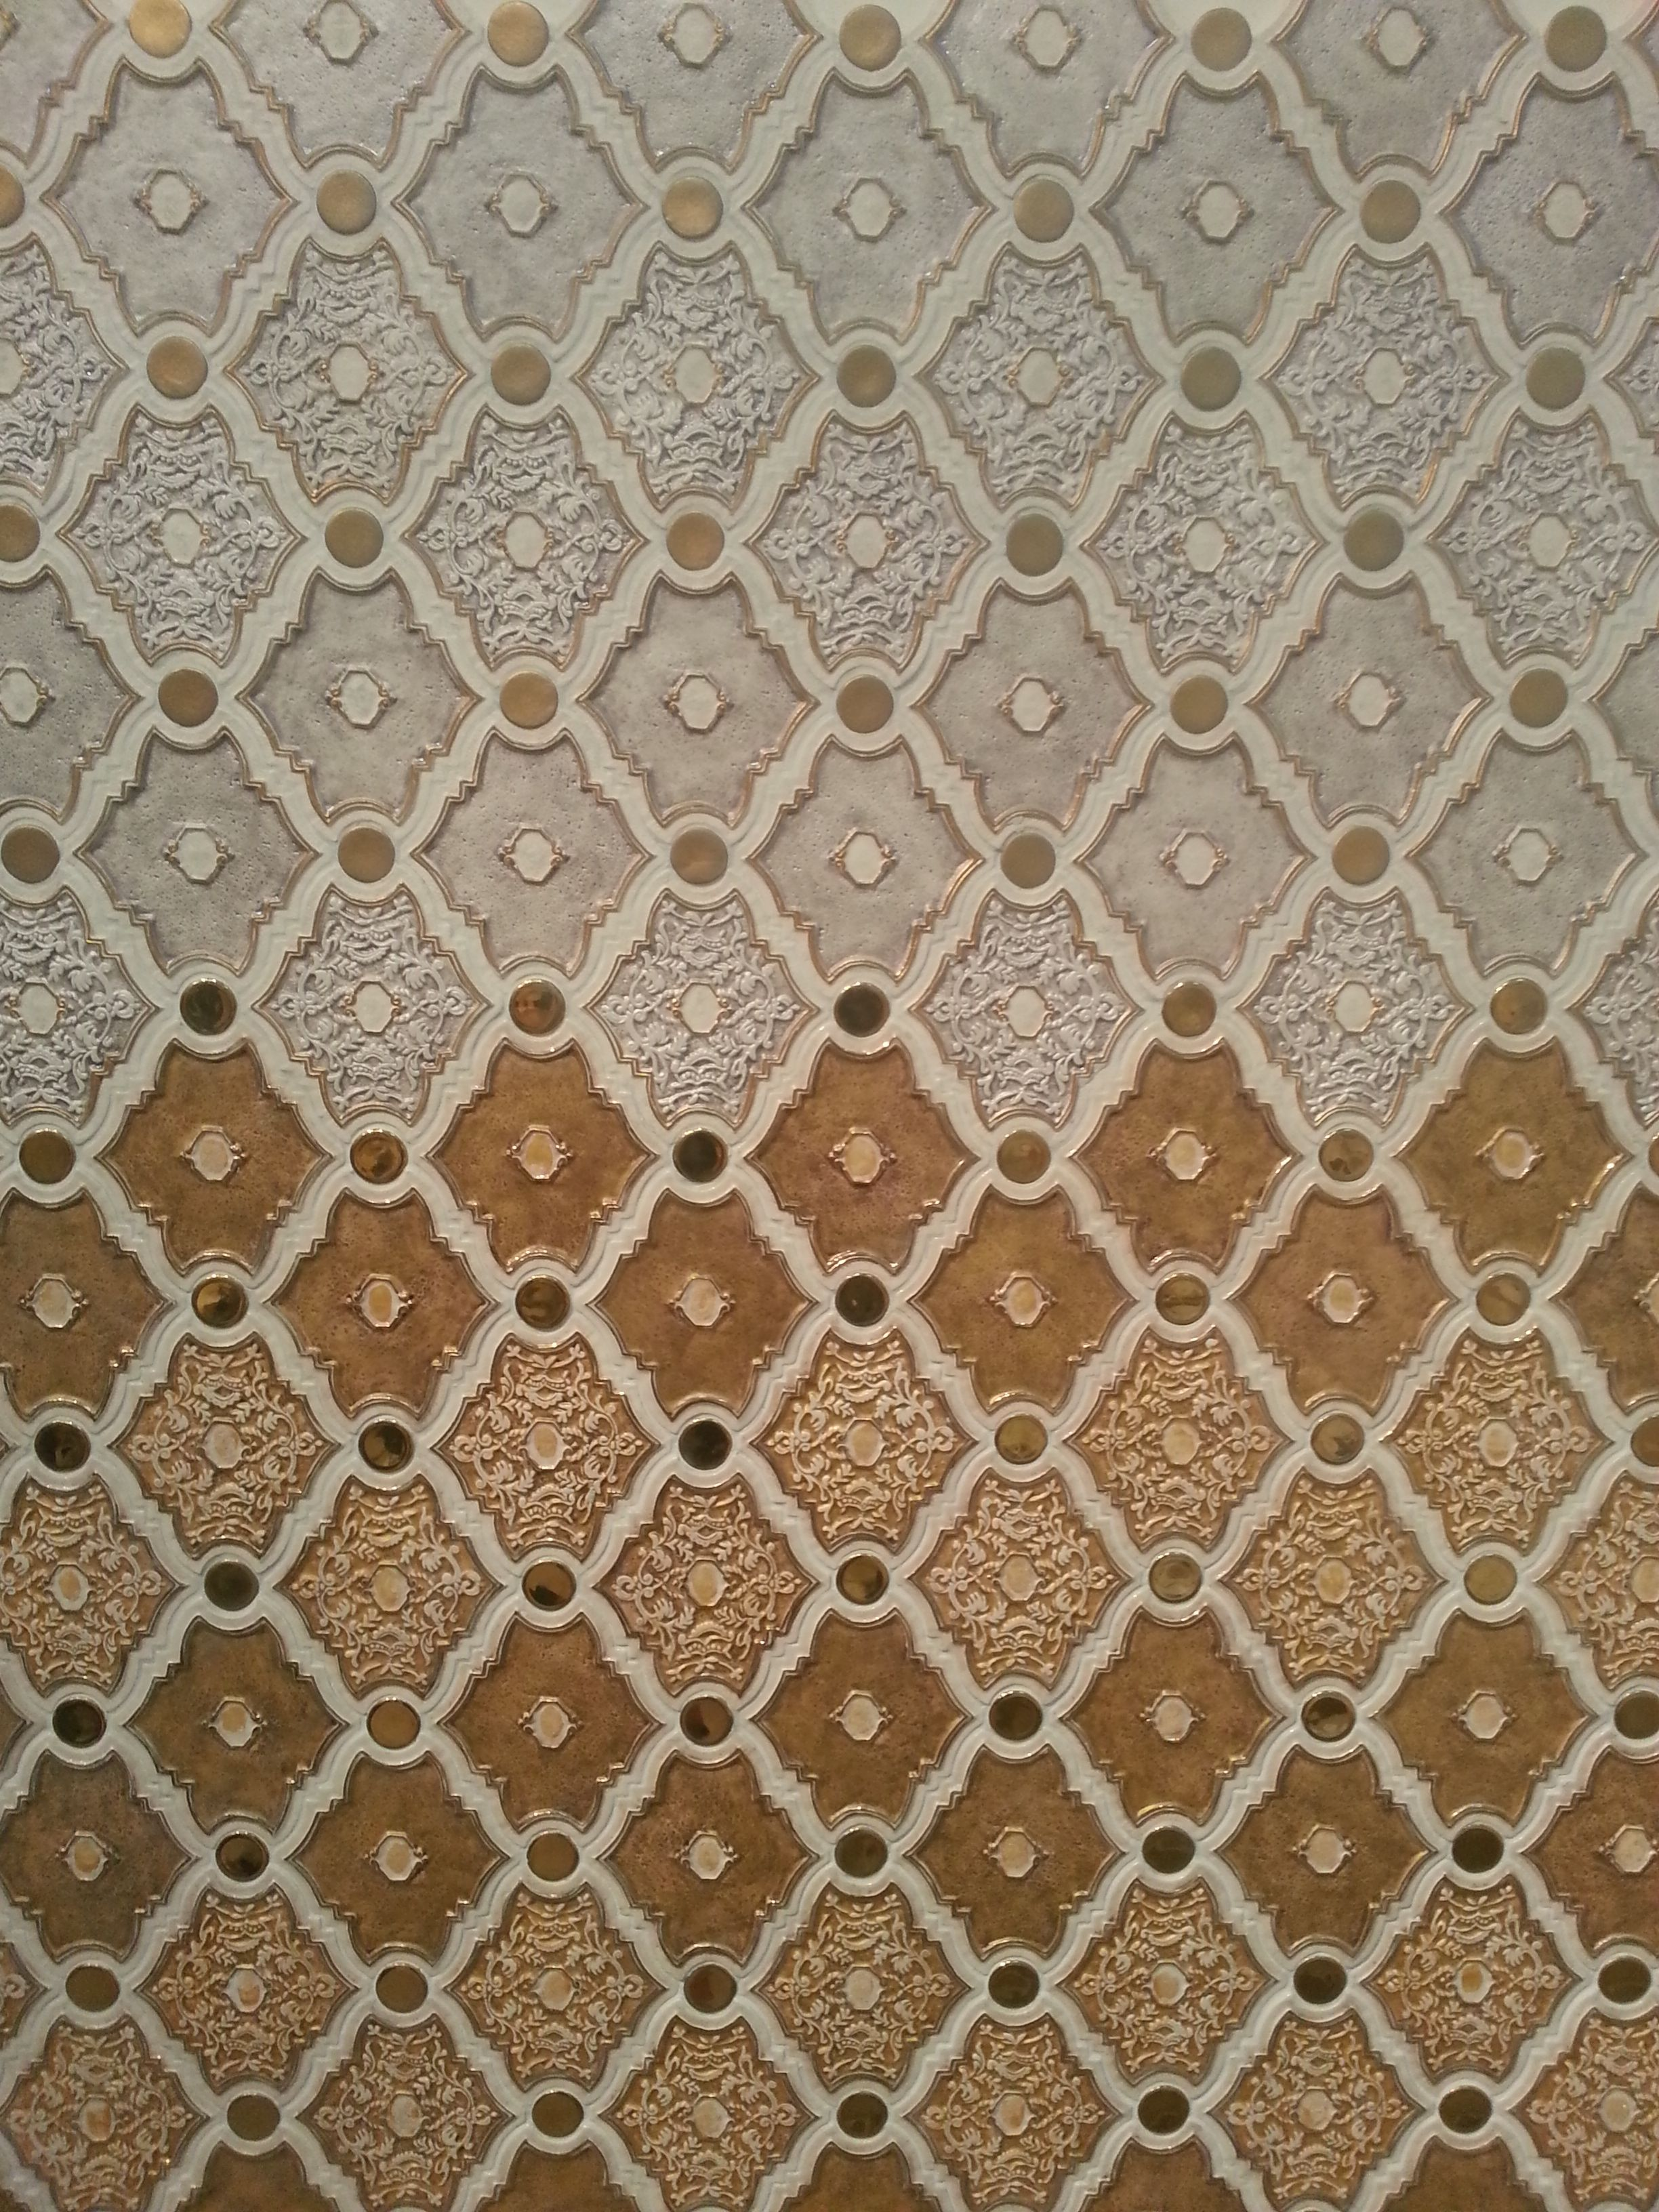 Patterned tiles with interesting geometric shapes | Heritage Tiles